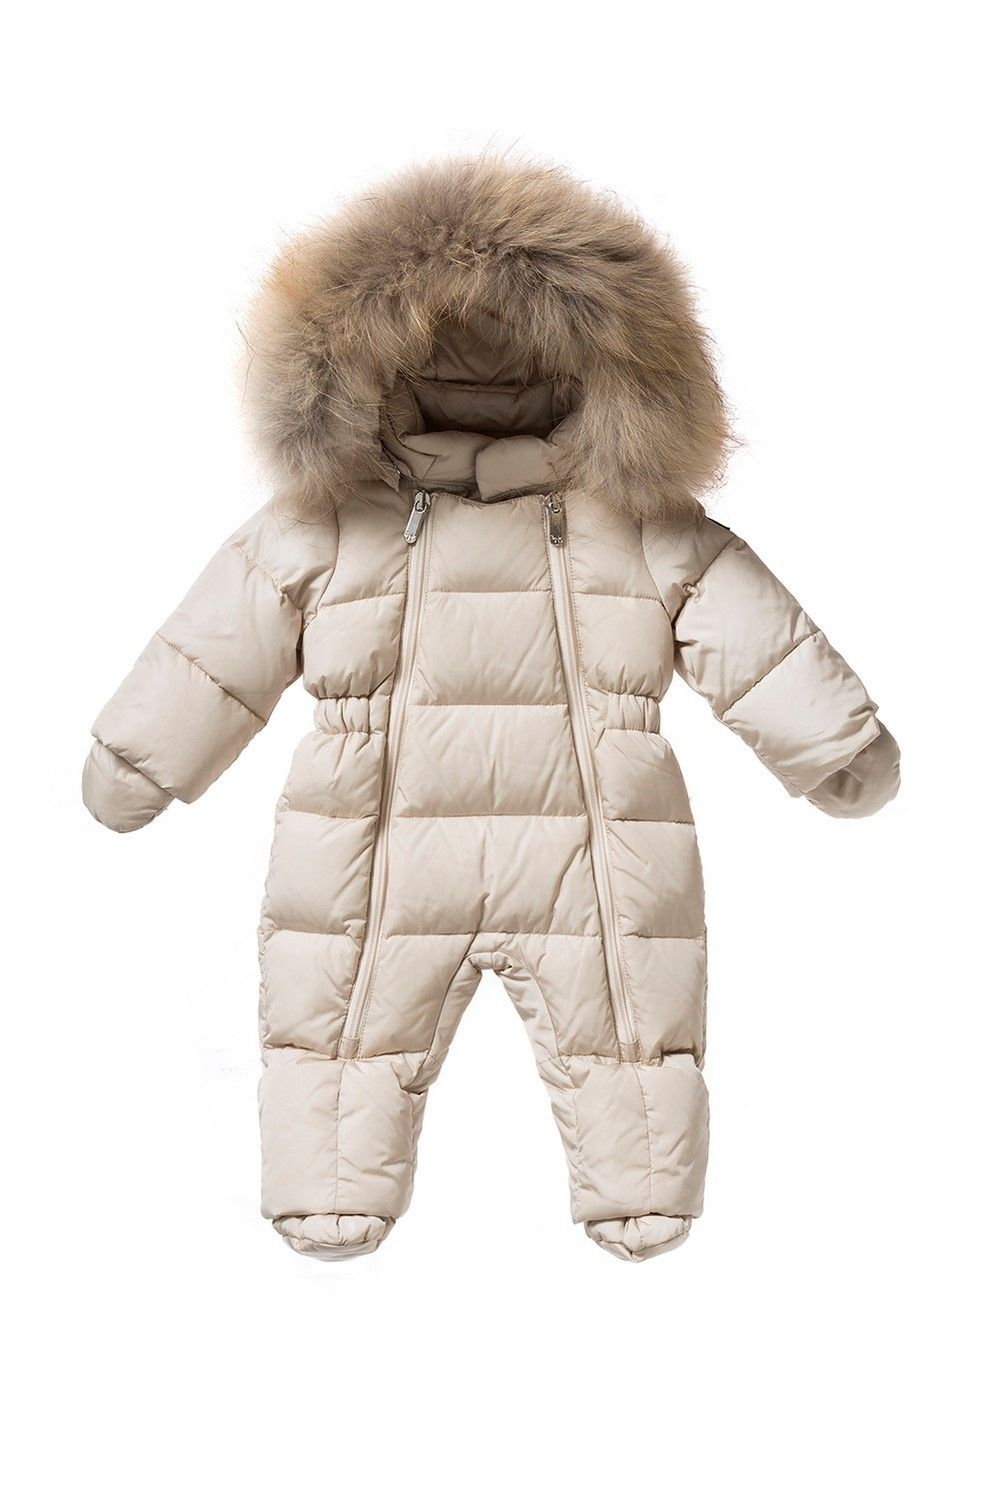 4034b8d9b520 Italian Luxury DOWN-FILLED SNOWSUIT WITH FUR IN BEIGE AND SAND